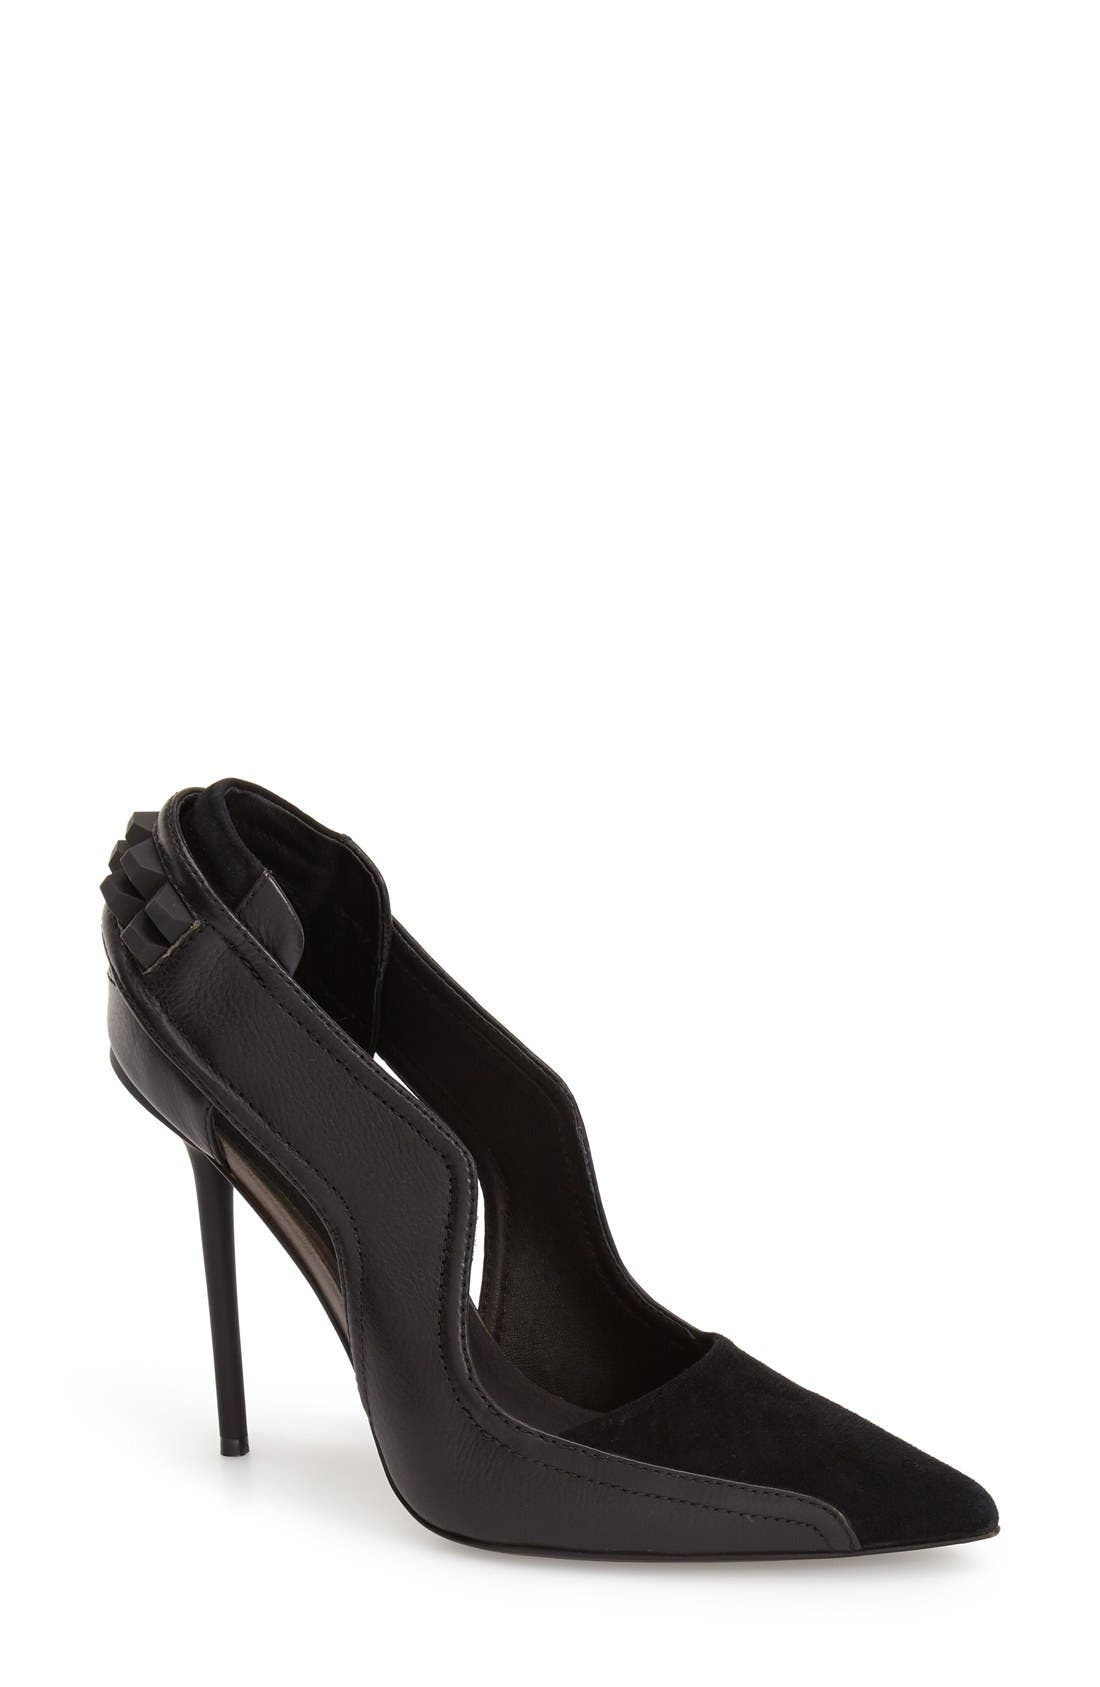 'Enforce' Leather & Suede Pointy Toe Pump,                             Main thumbnail 1, color,                             002